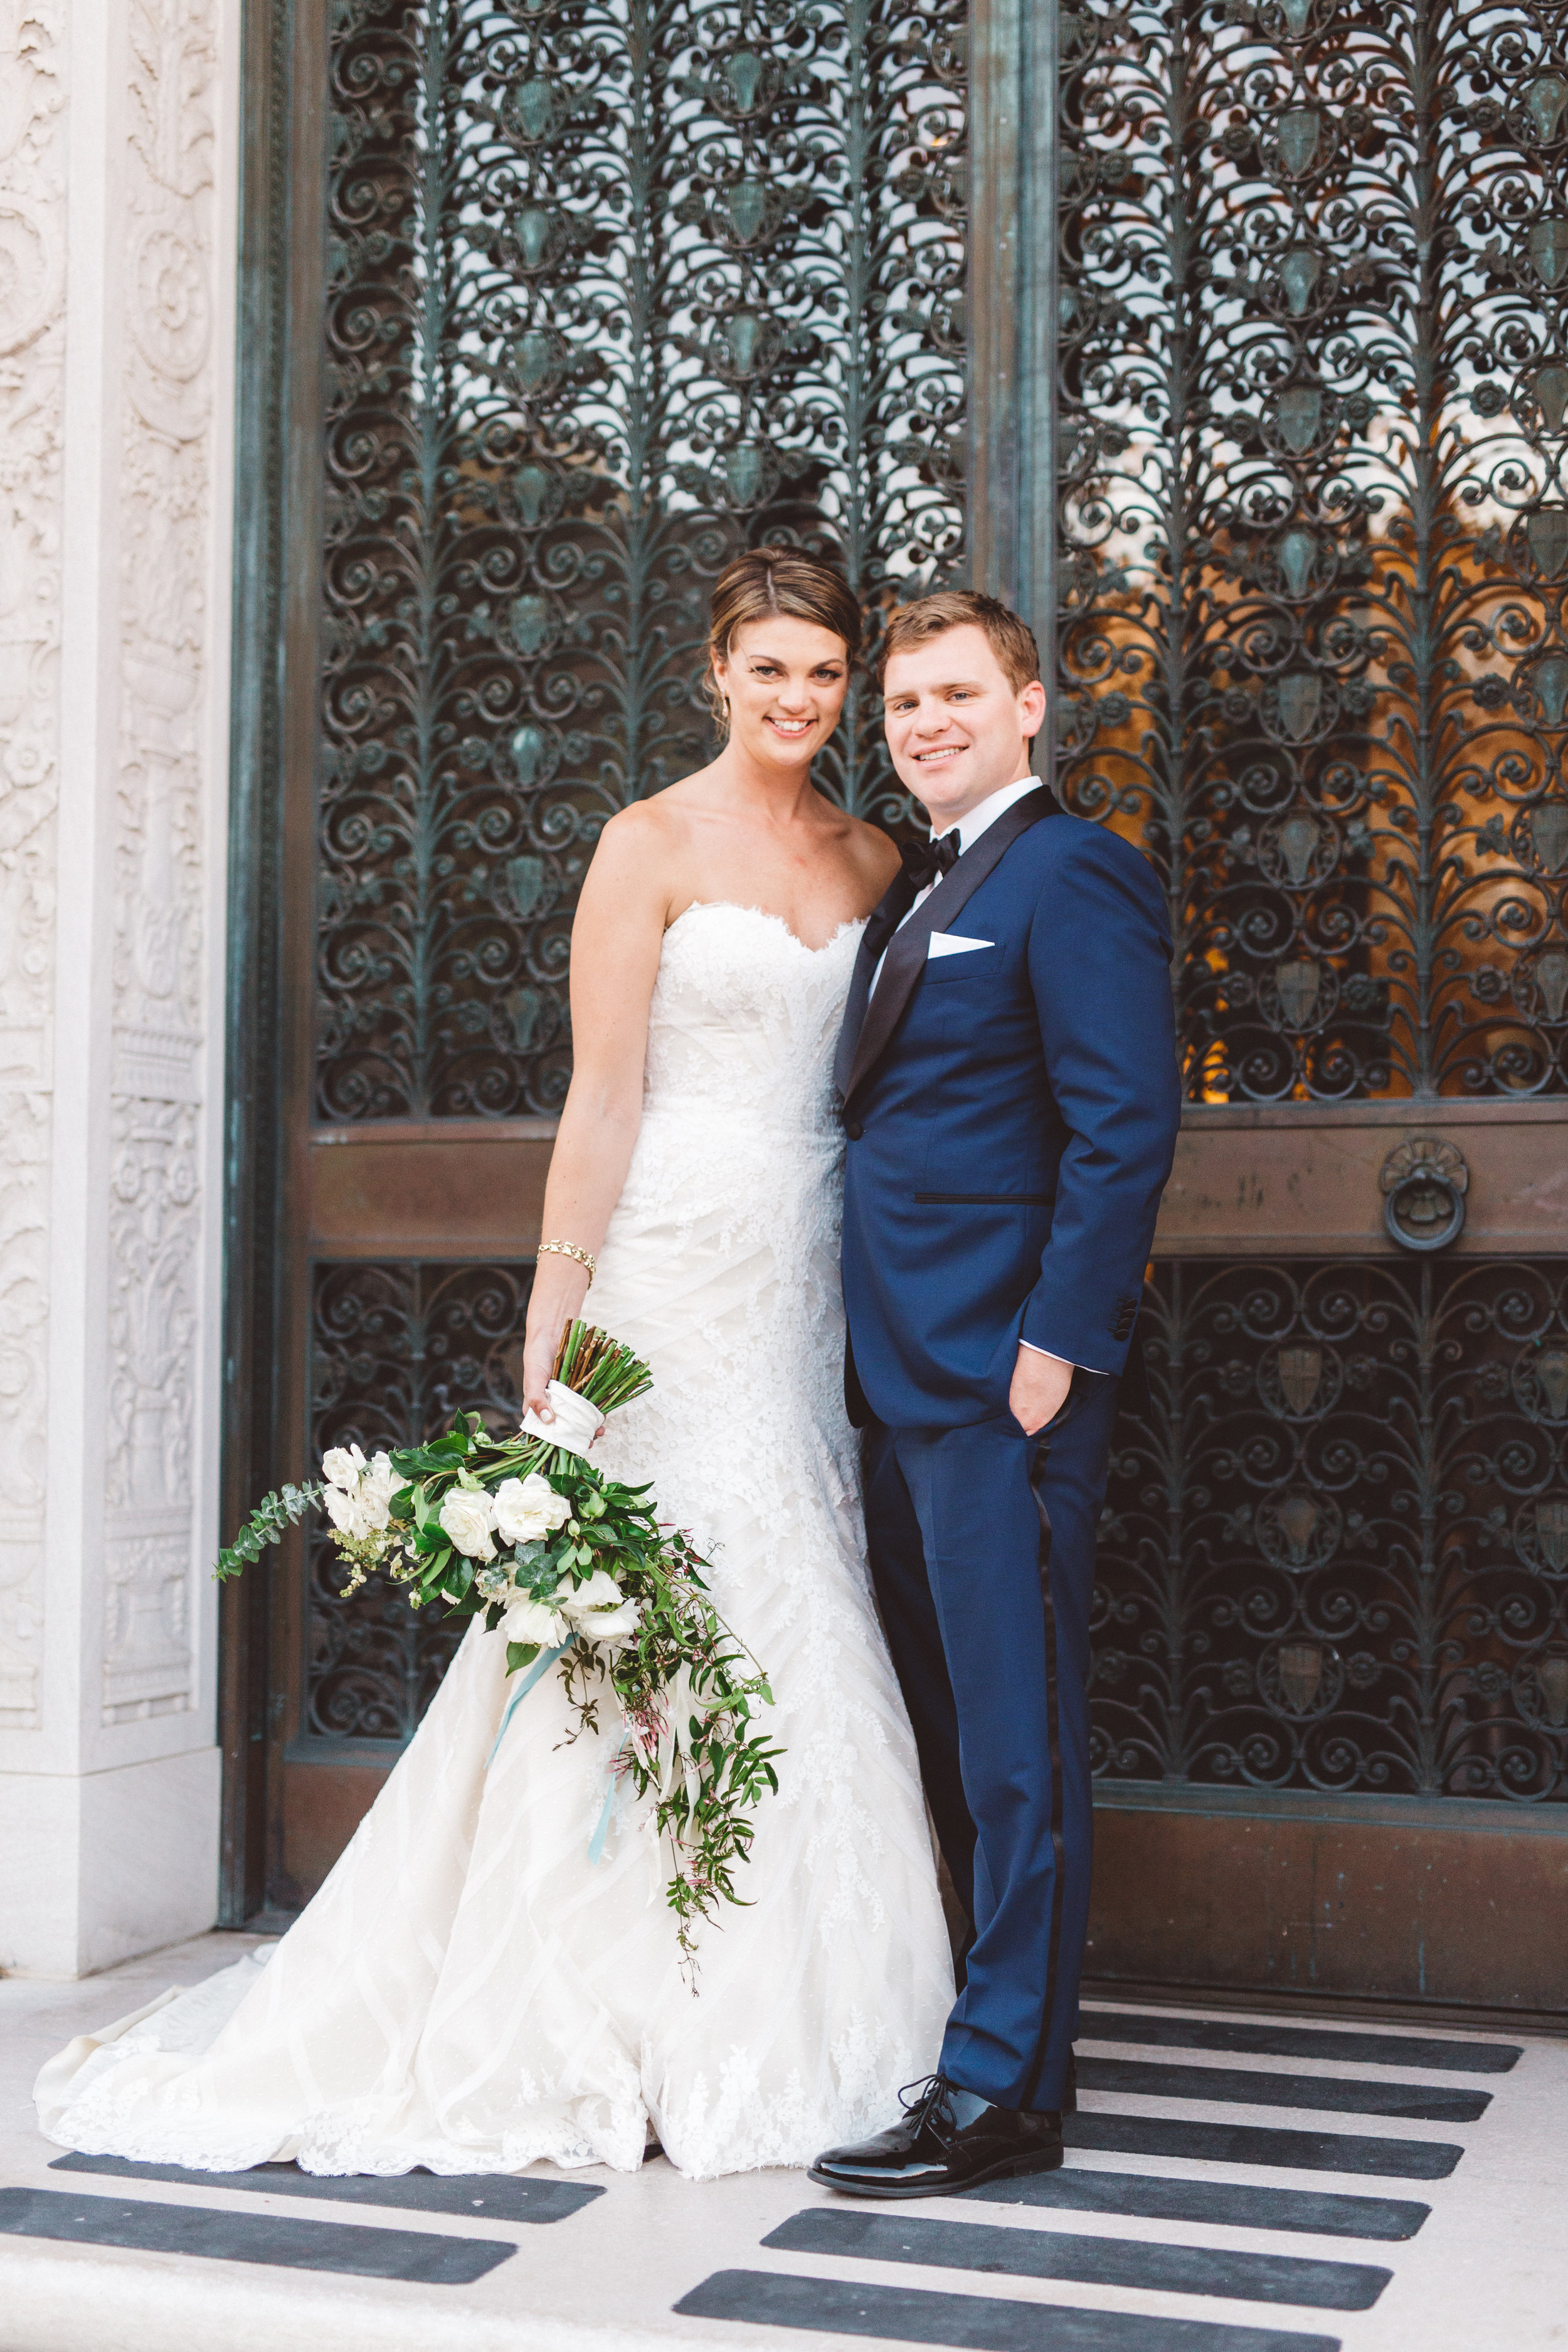 Anna Delores Photography_Lindsay & Curt 09.17.16-1284.jpg